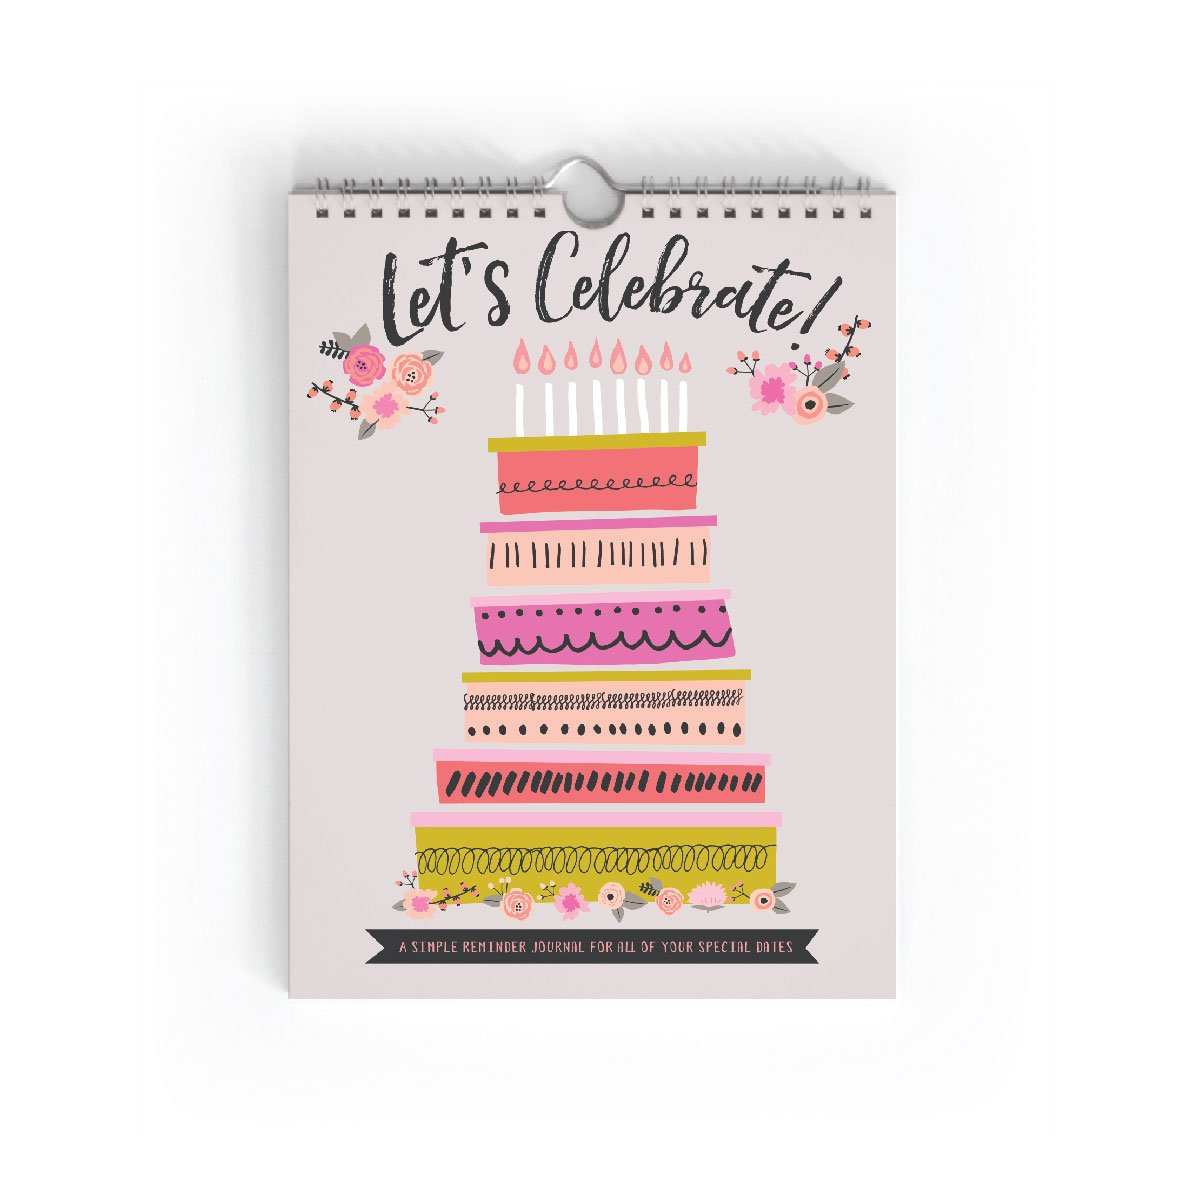 Let's Celebrate! Birthday Journal by Lucy Darling